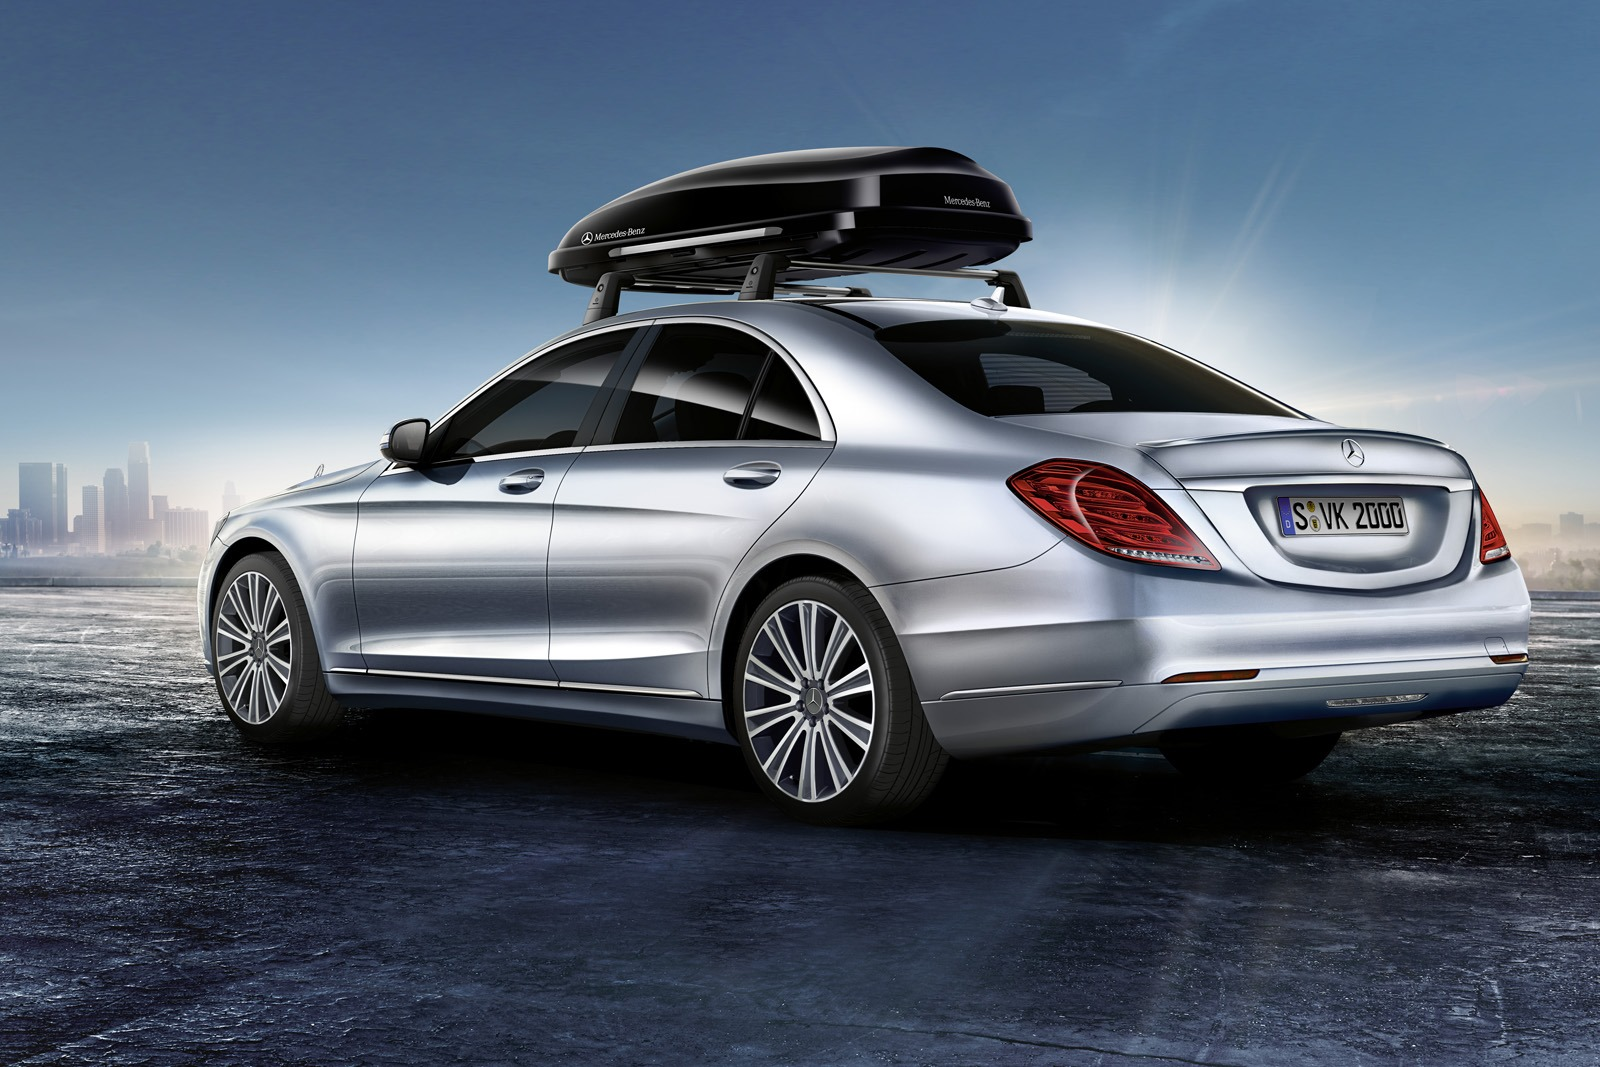 2014 mercedes benz s class accessories unveiled for Mercedes benz clothes and accessories